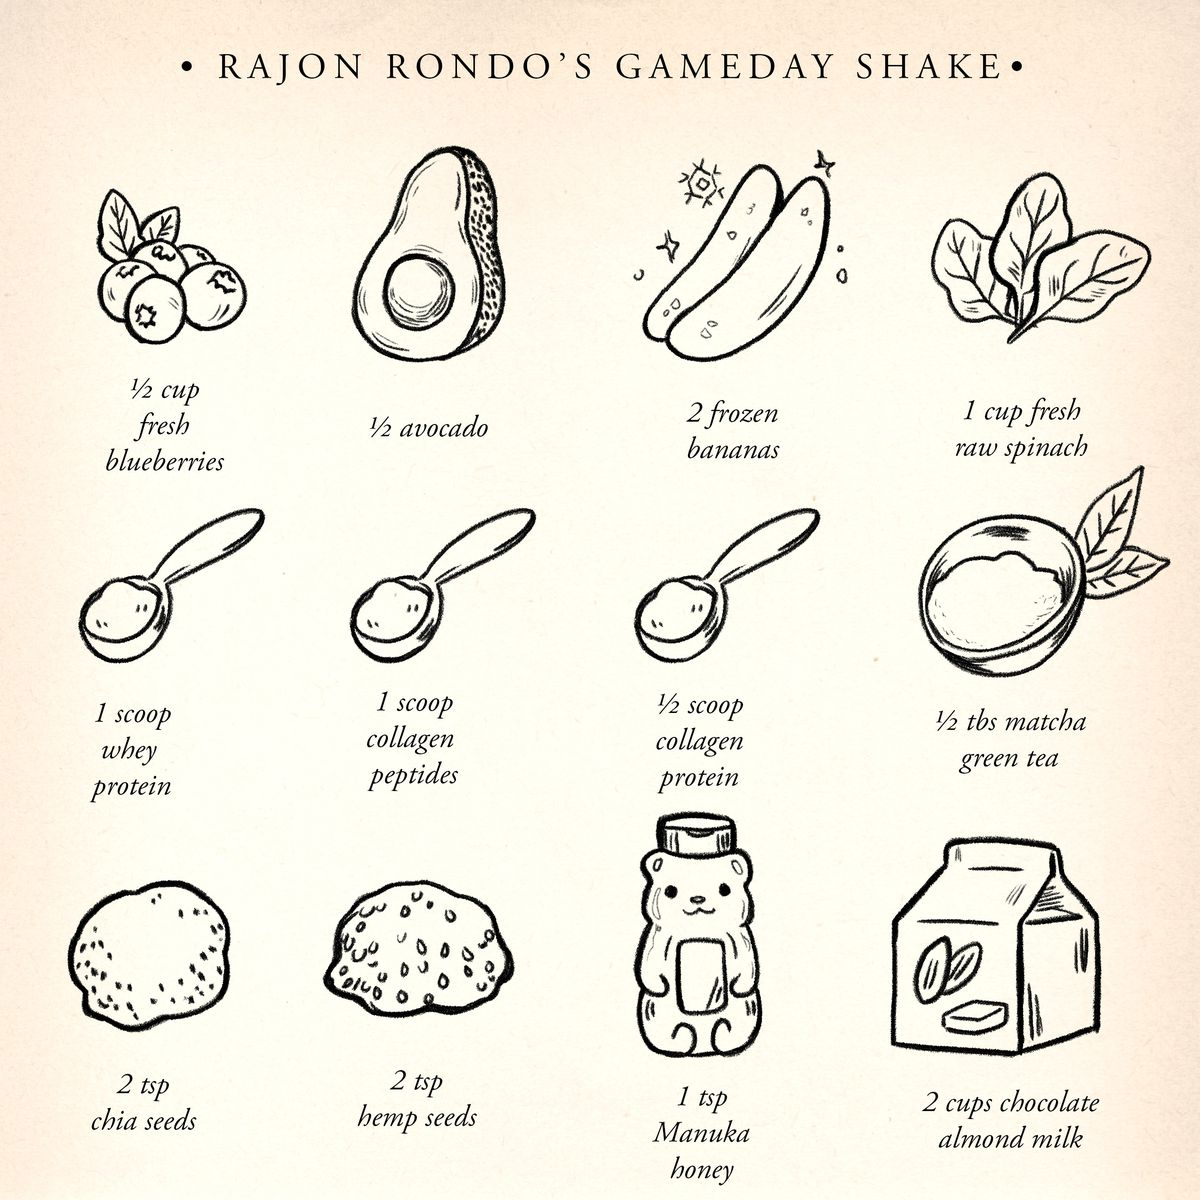 An image listing all of the ingredients in Rajon Rondo's gameday shake, including blueberries, avocado, bananas, and proteins